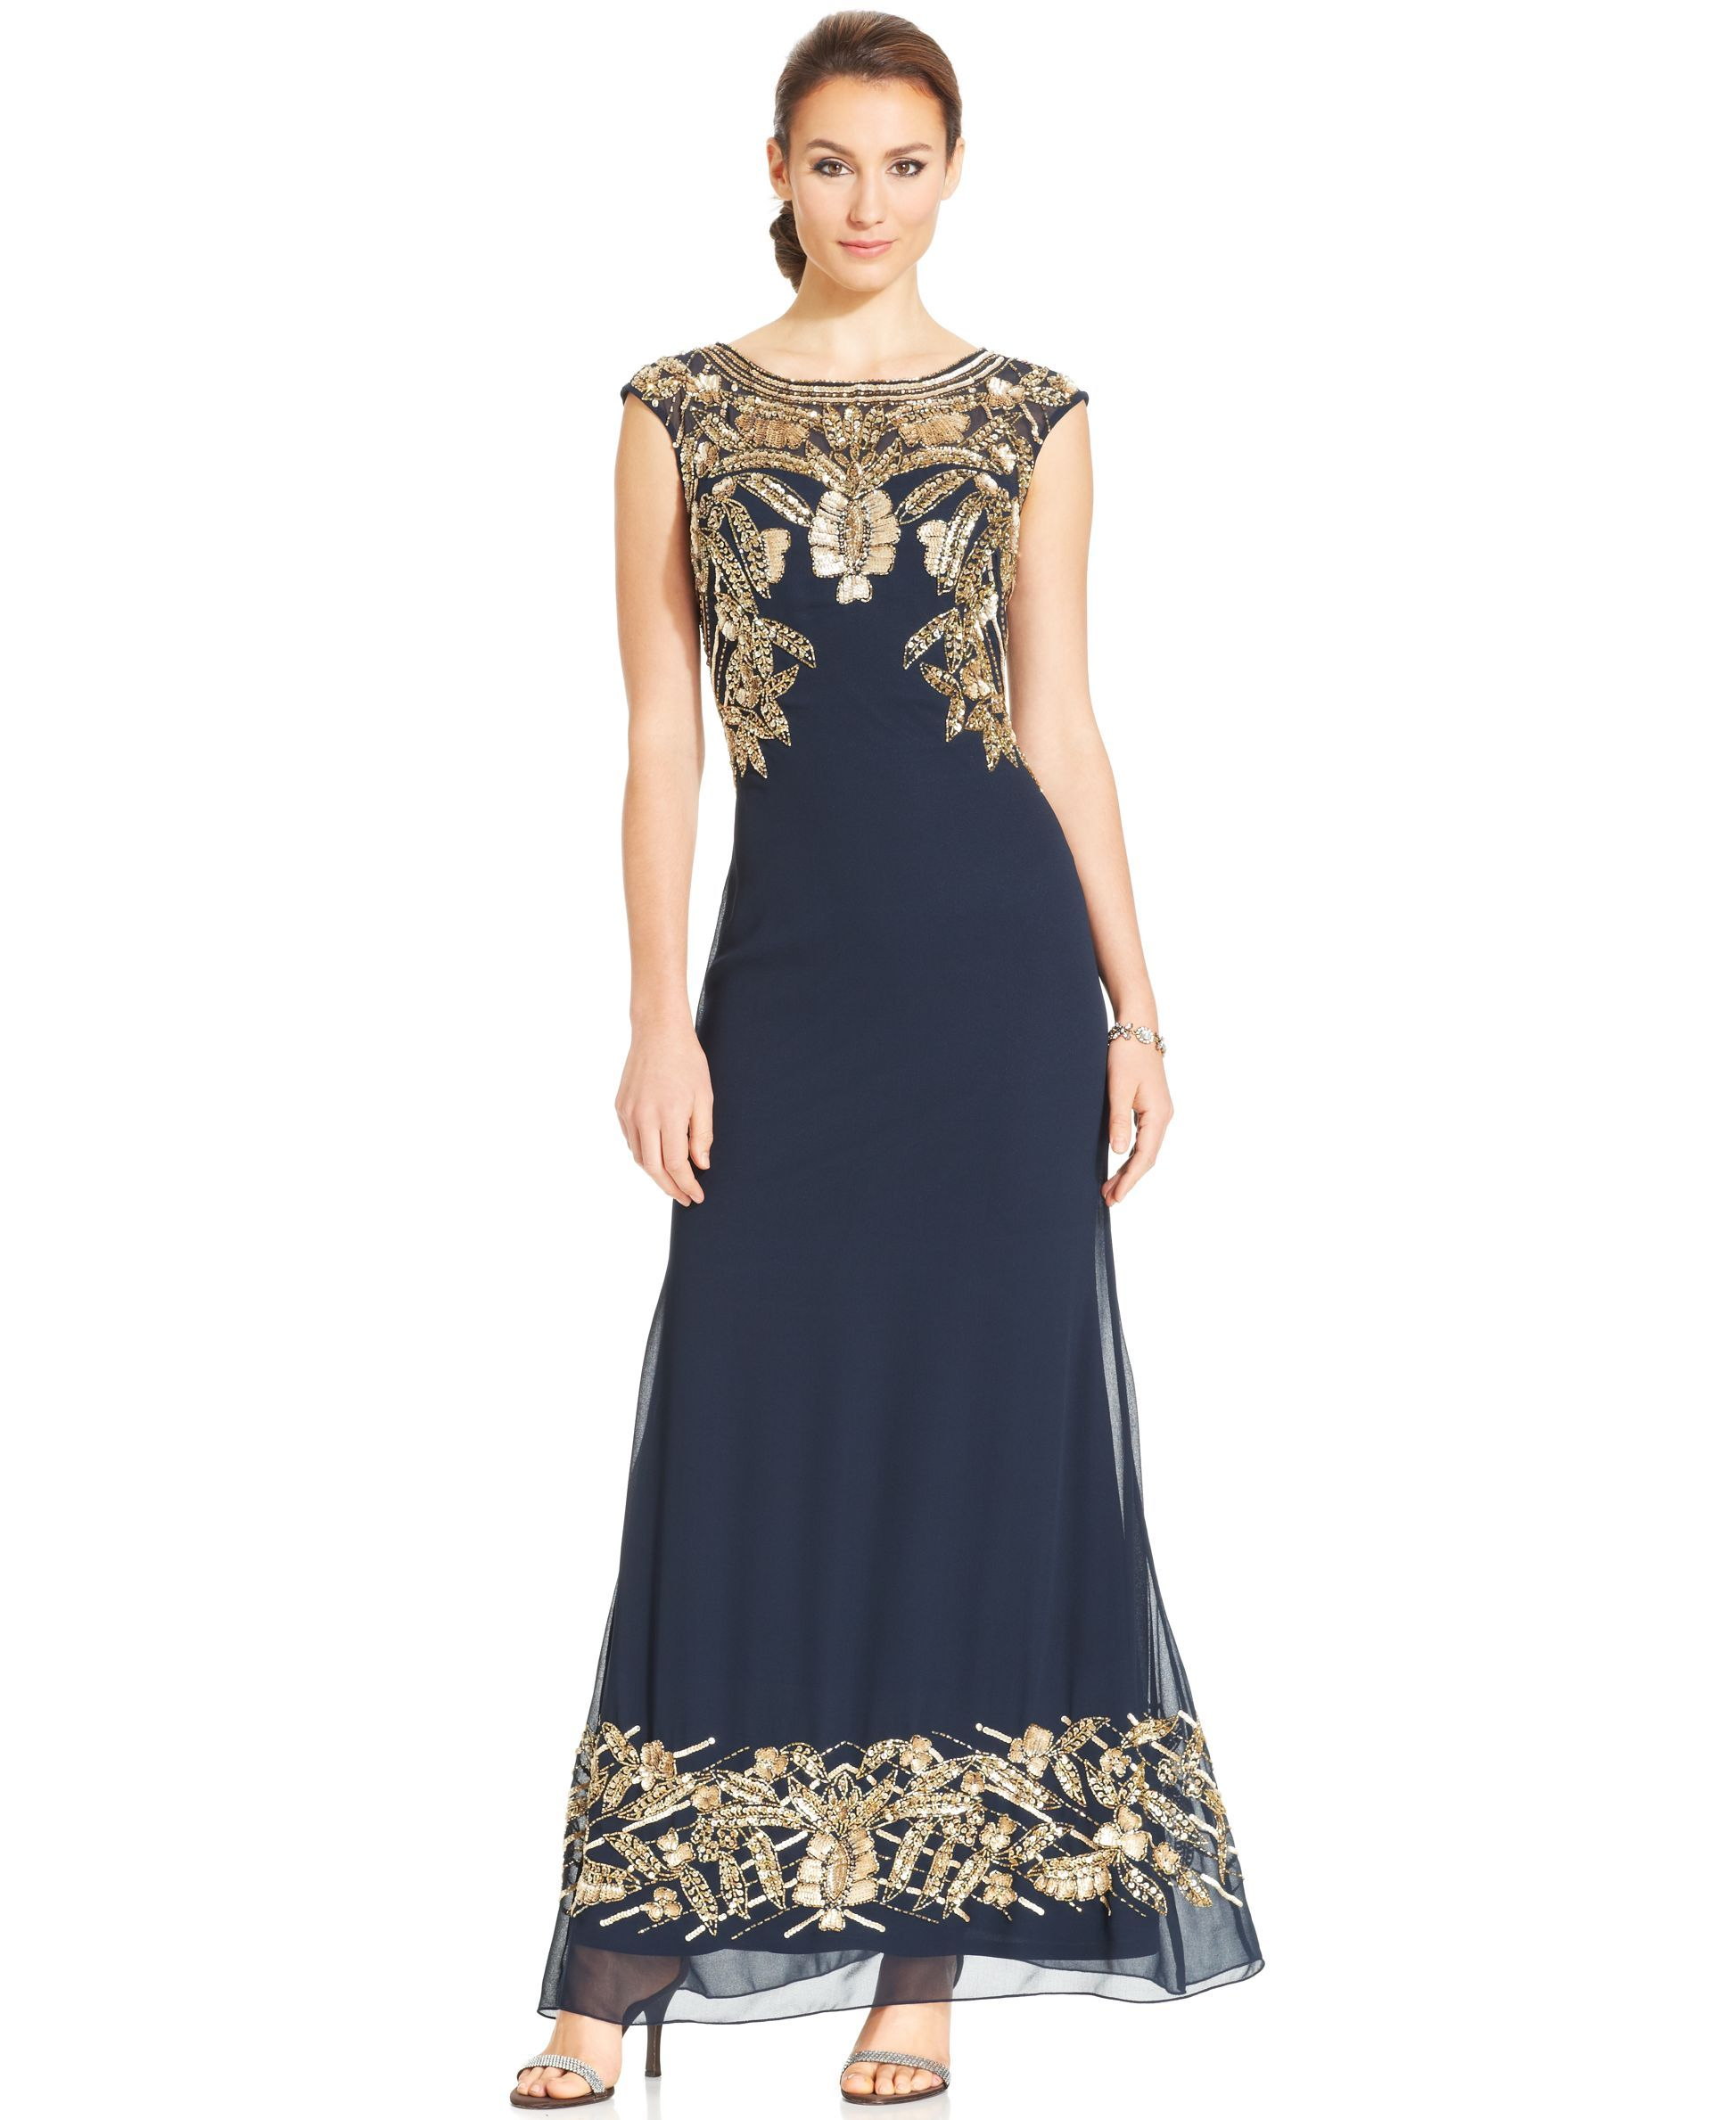 Js Collections Cap-Sleeve Embellished Gown | foto | Pinterest | Cap ...